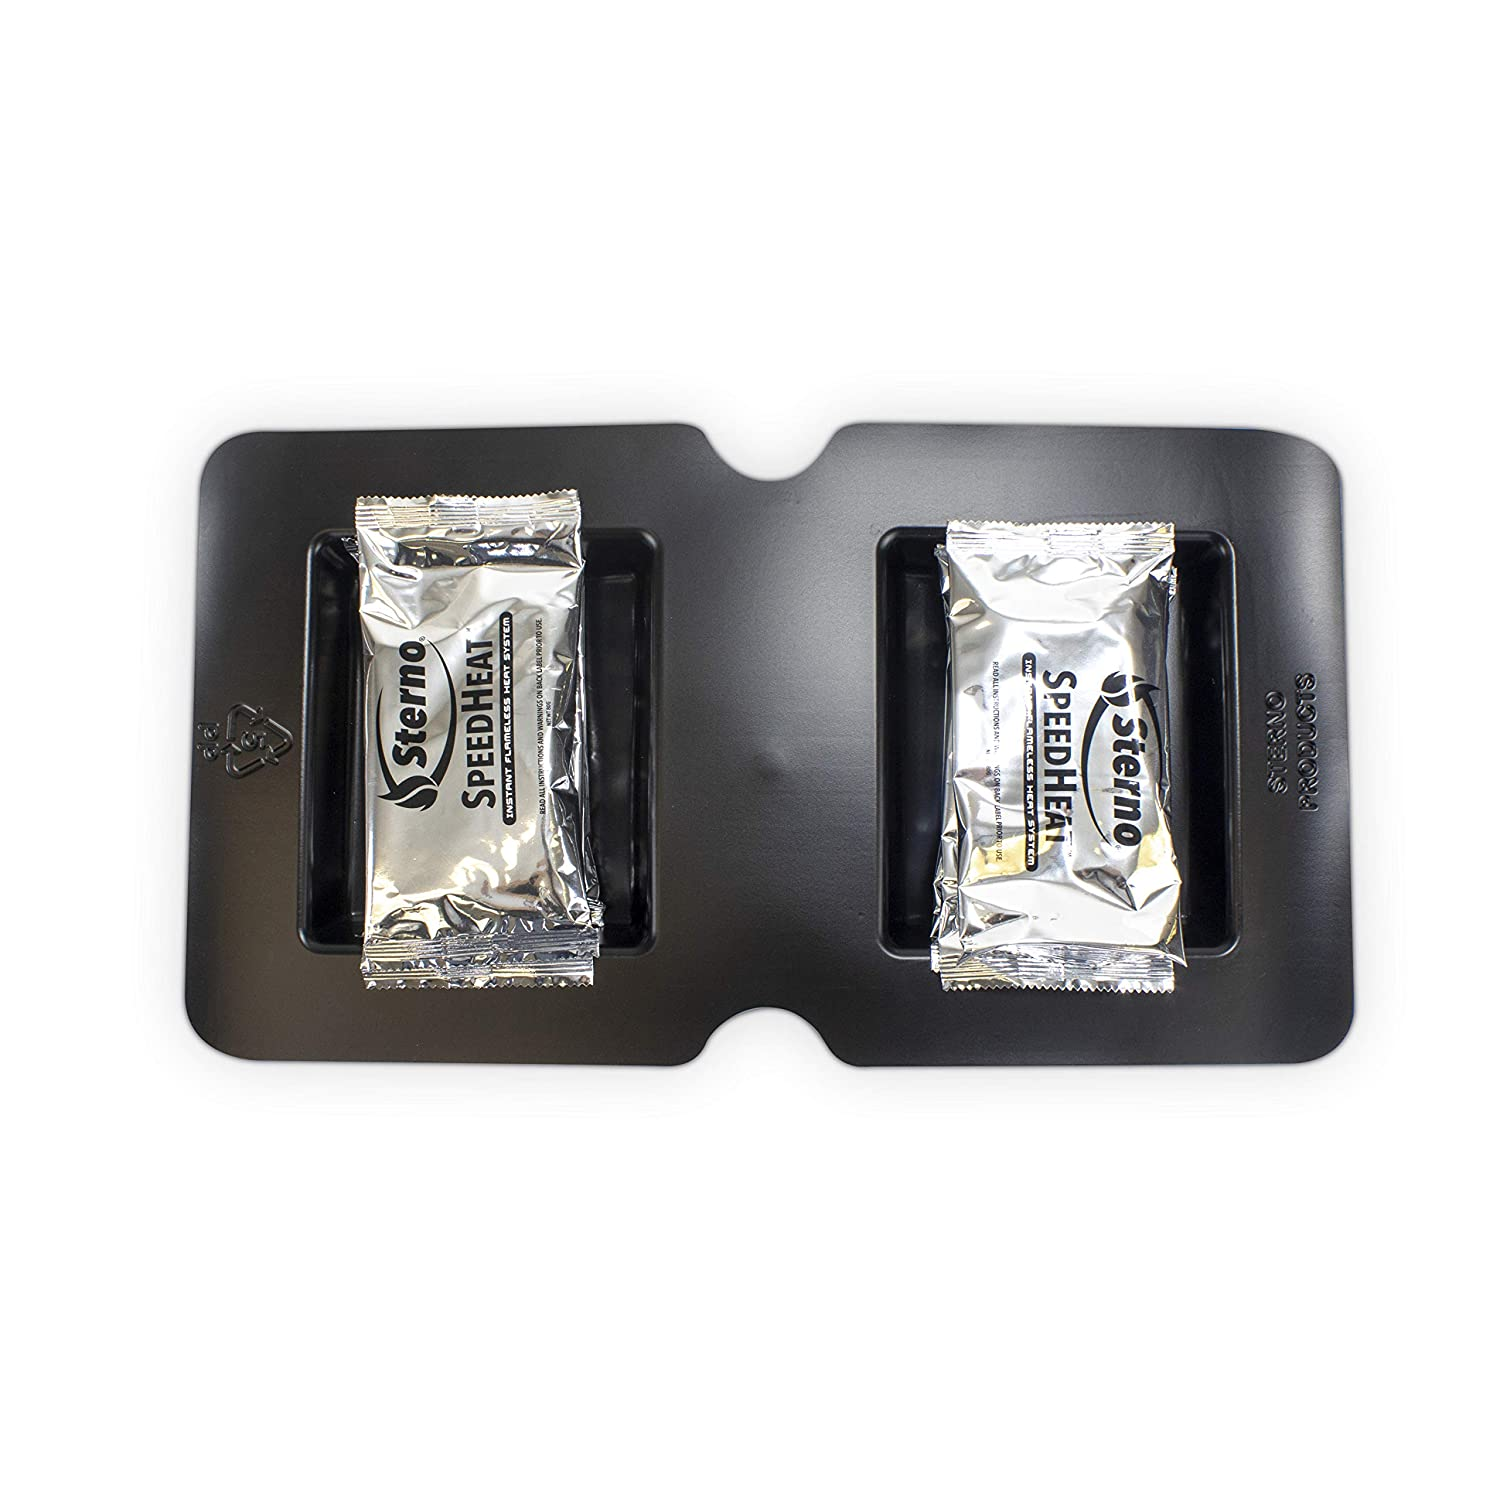 Sterno 70356 SpeedHeat Flameless Food Warming System Tray and Packet Refills, 3 Pack